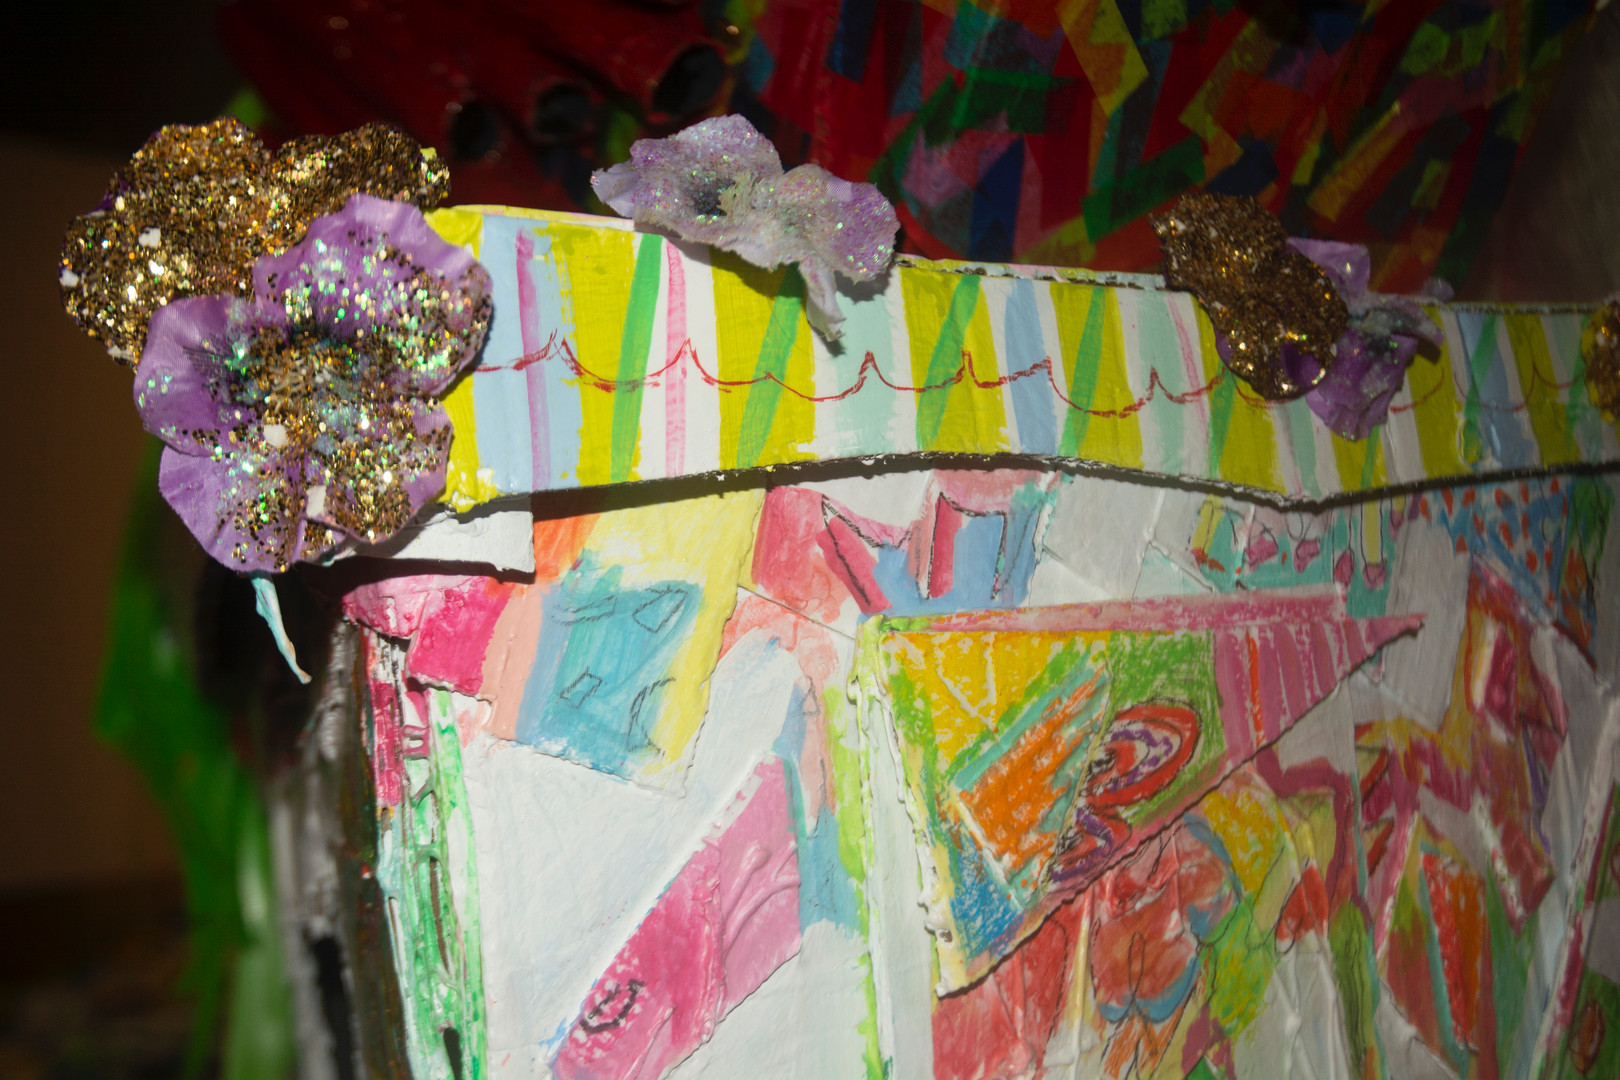 The Cake (detail)